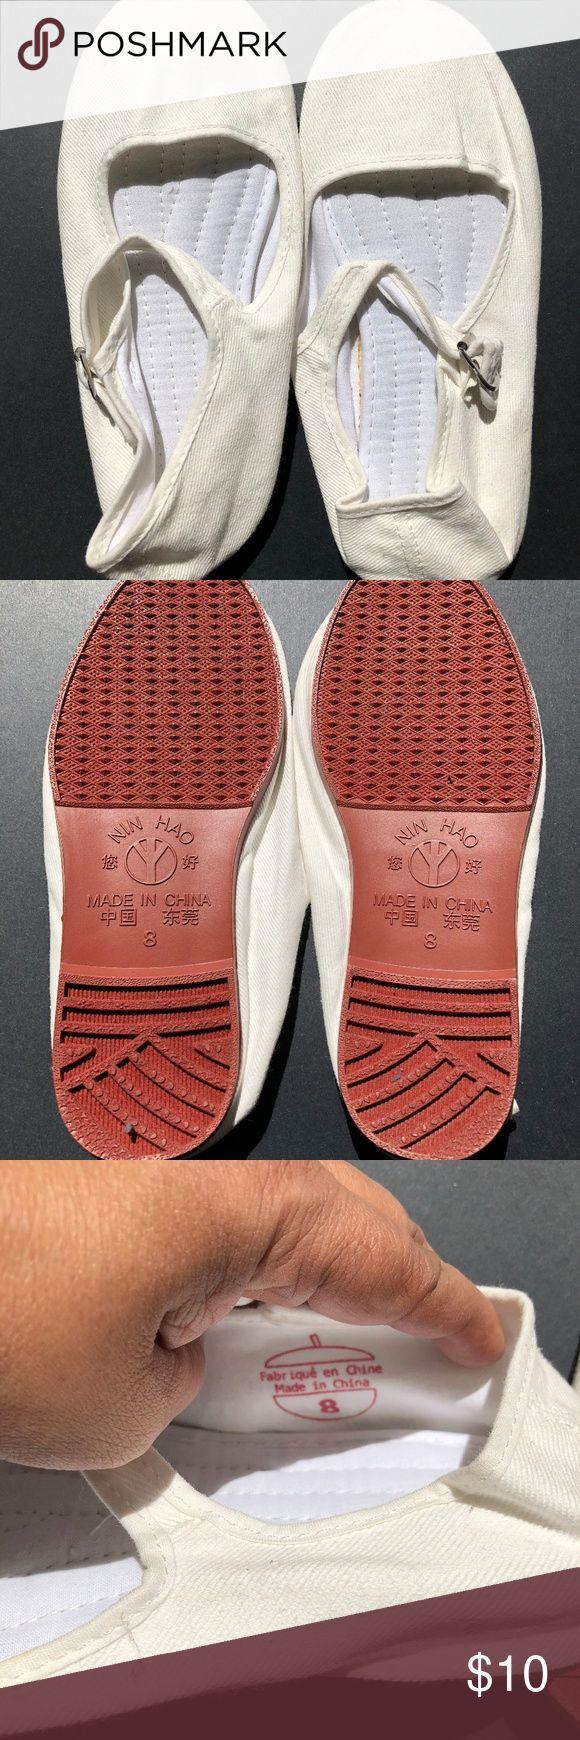 Urban Outfitters Cotton Mary Janes - Size 8 Urban Outfitters Cotton Mary Janes sized 8 in white.  Never worn but slightly yellowed from age (it is 2-3 years old). Urban Outfitters Shoes Flats & Loafers